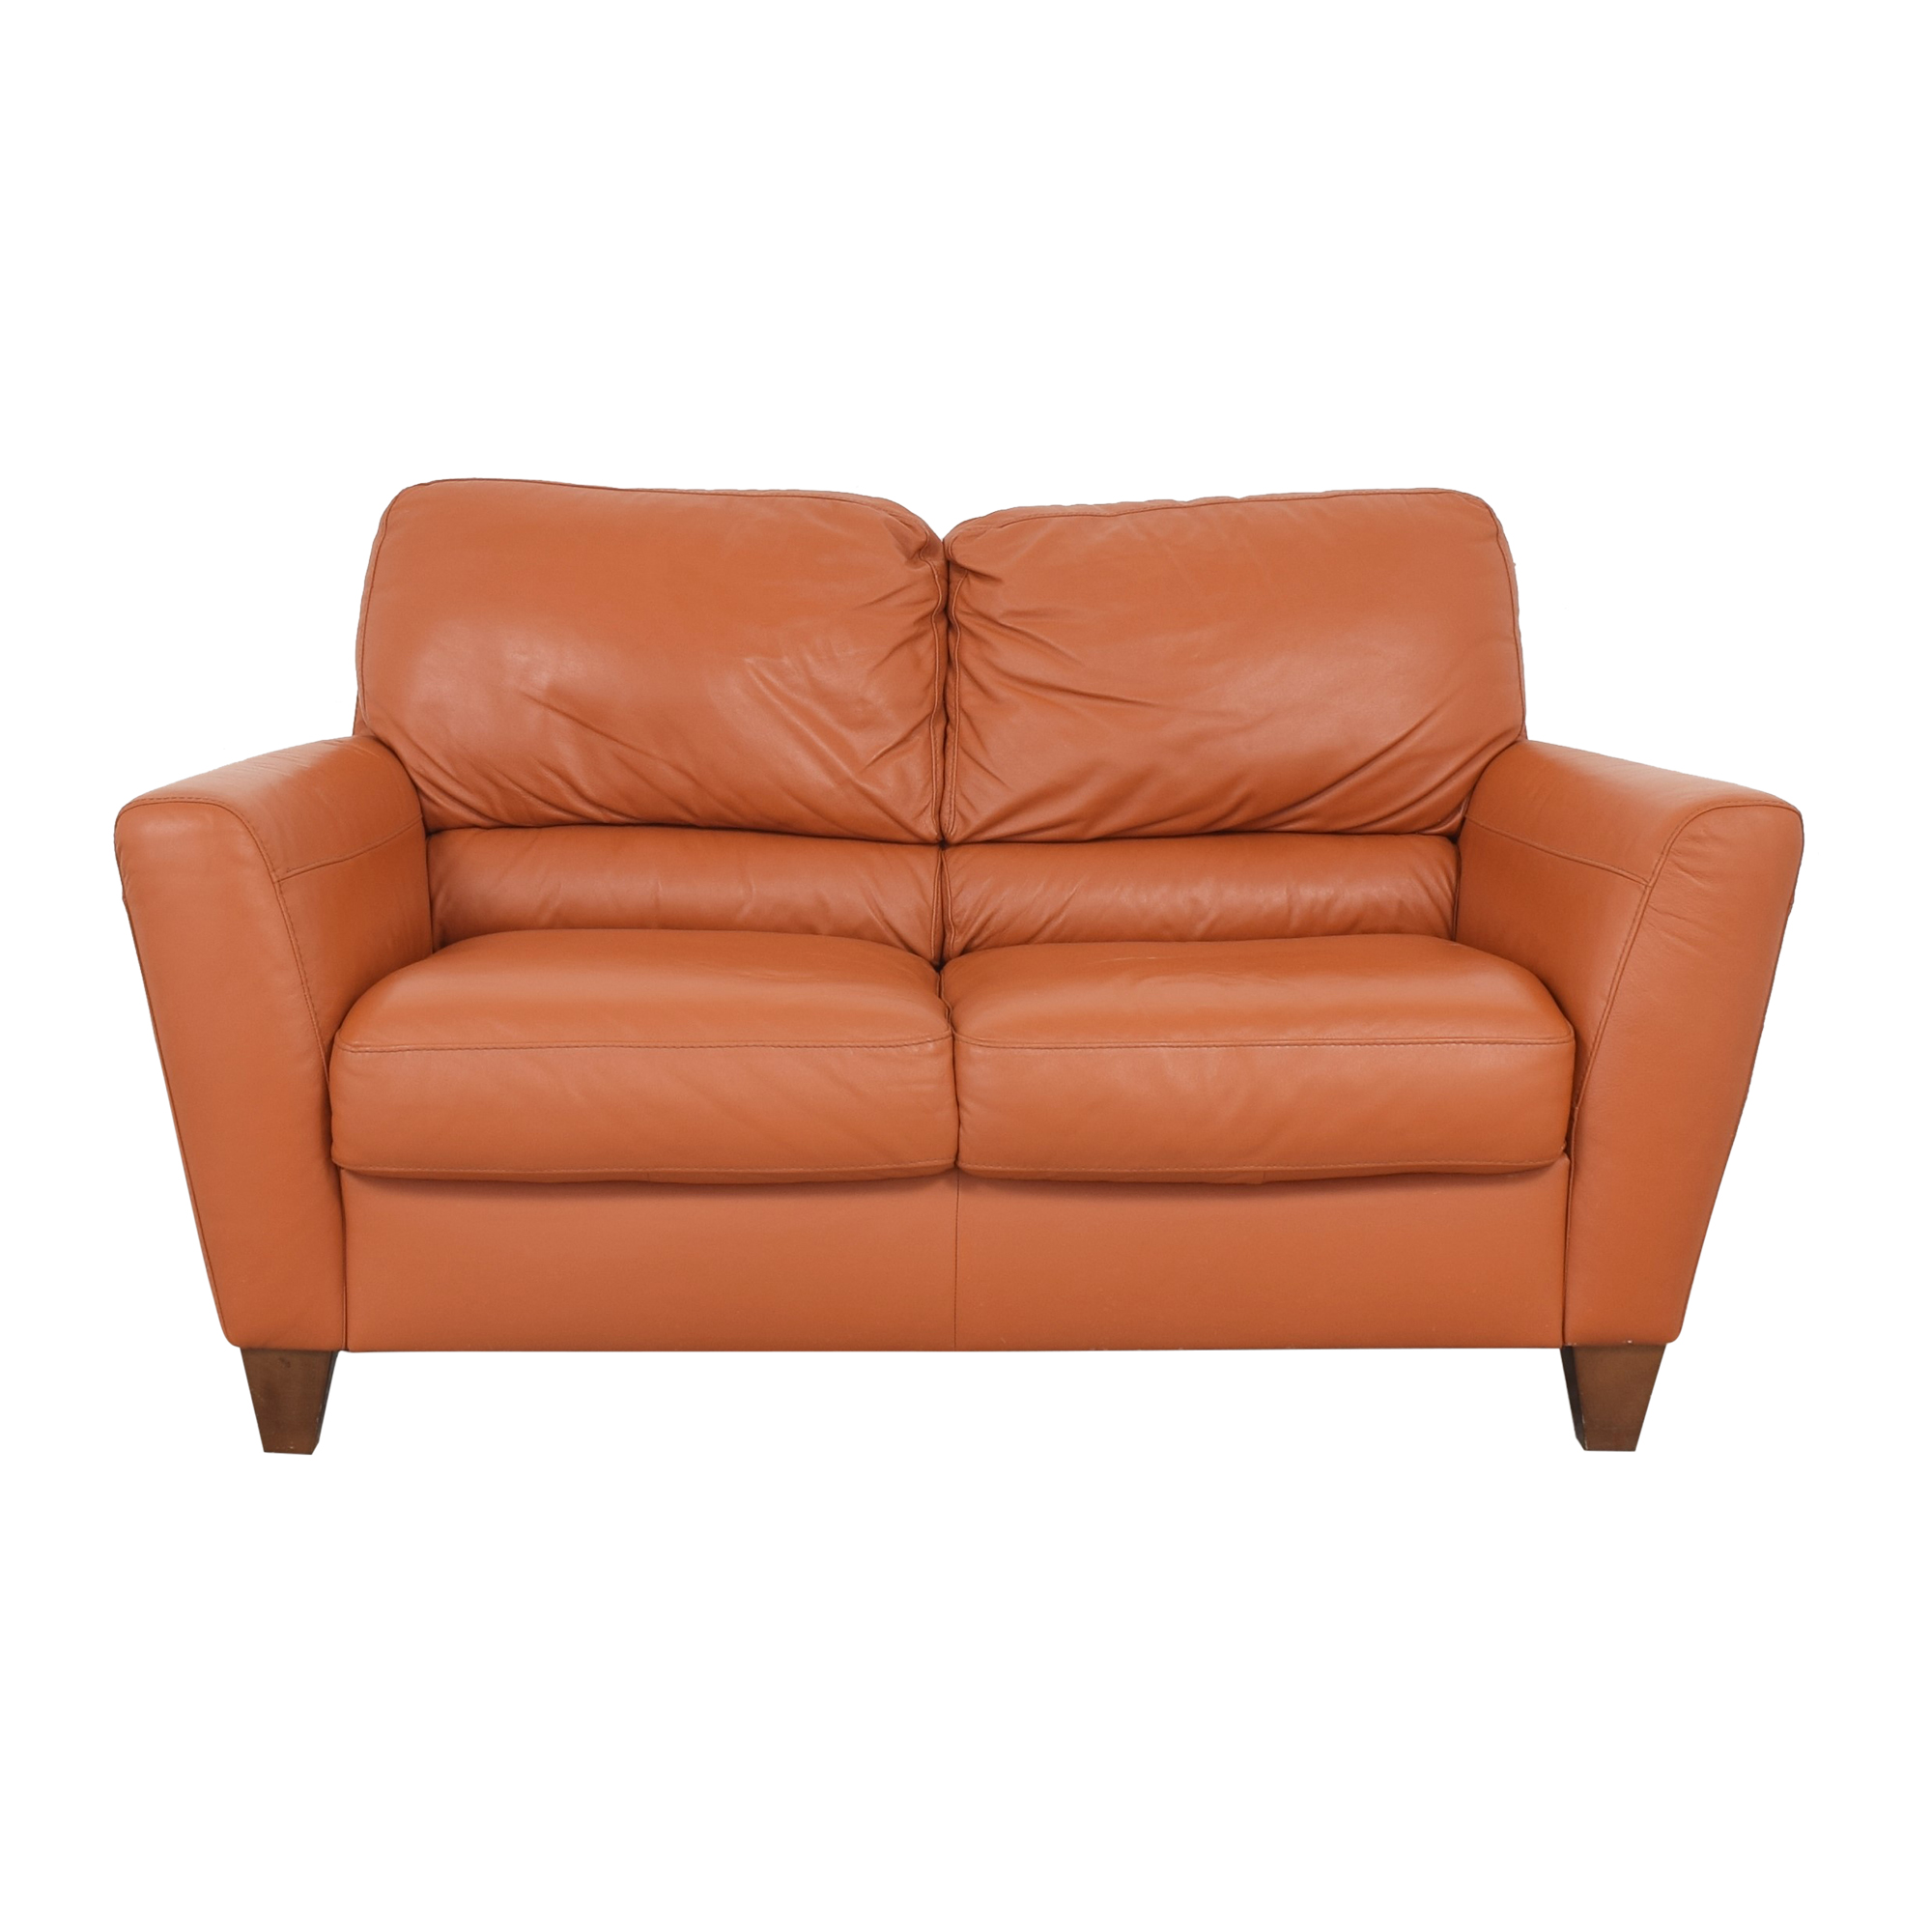 buy  Two Cushion Loveseat online